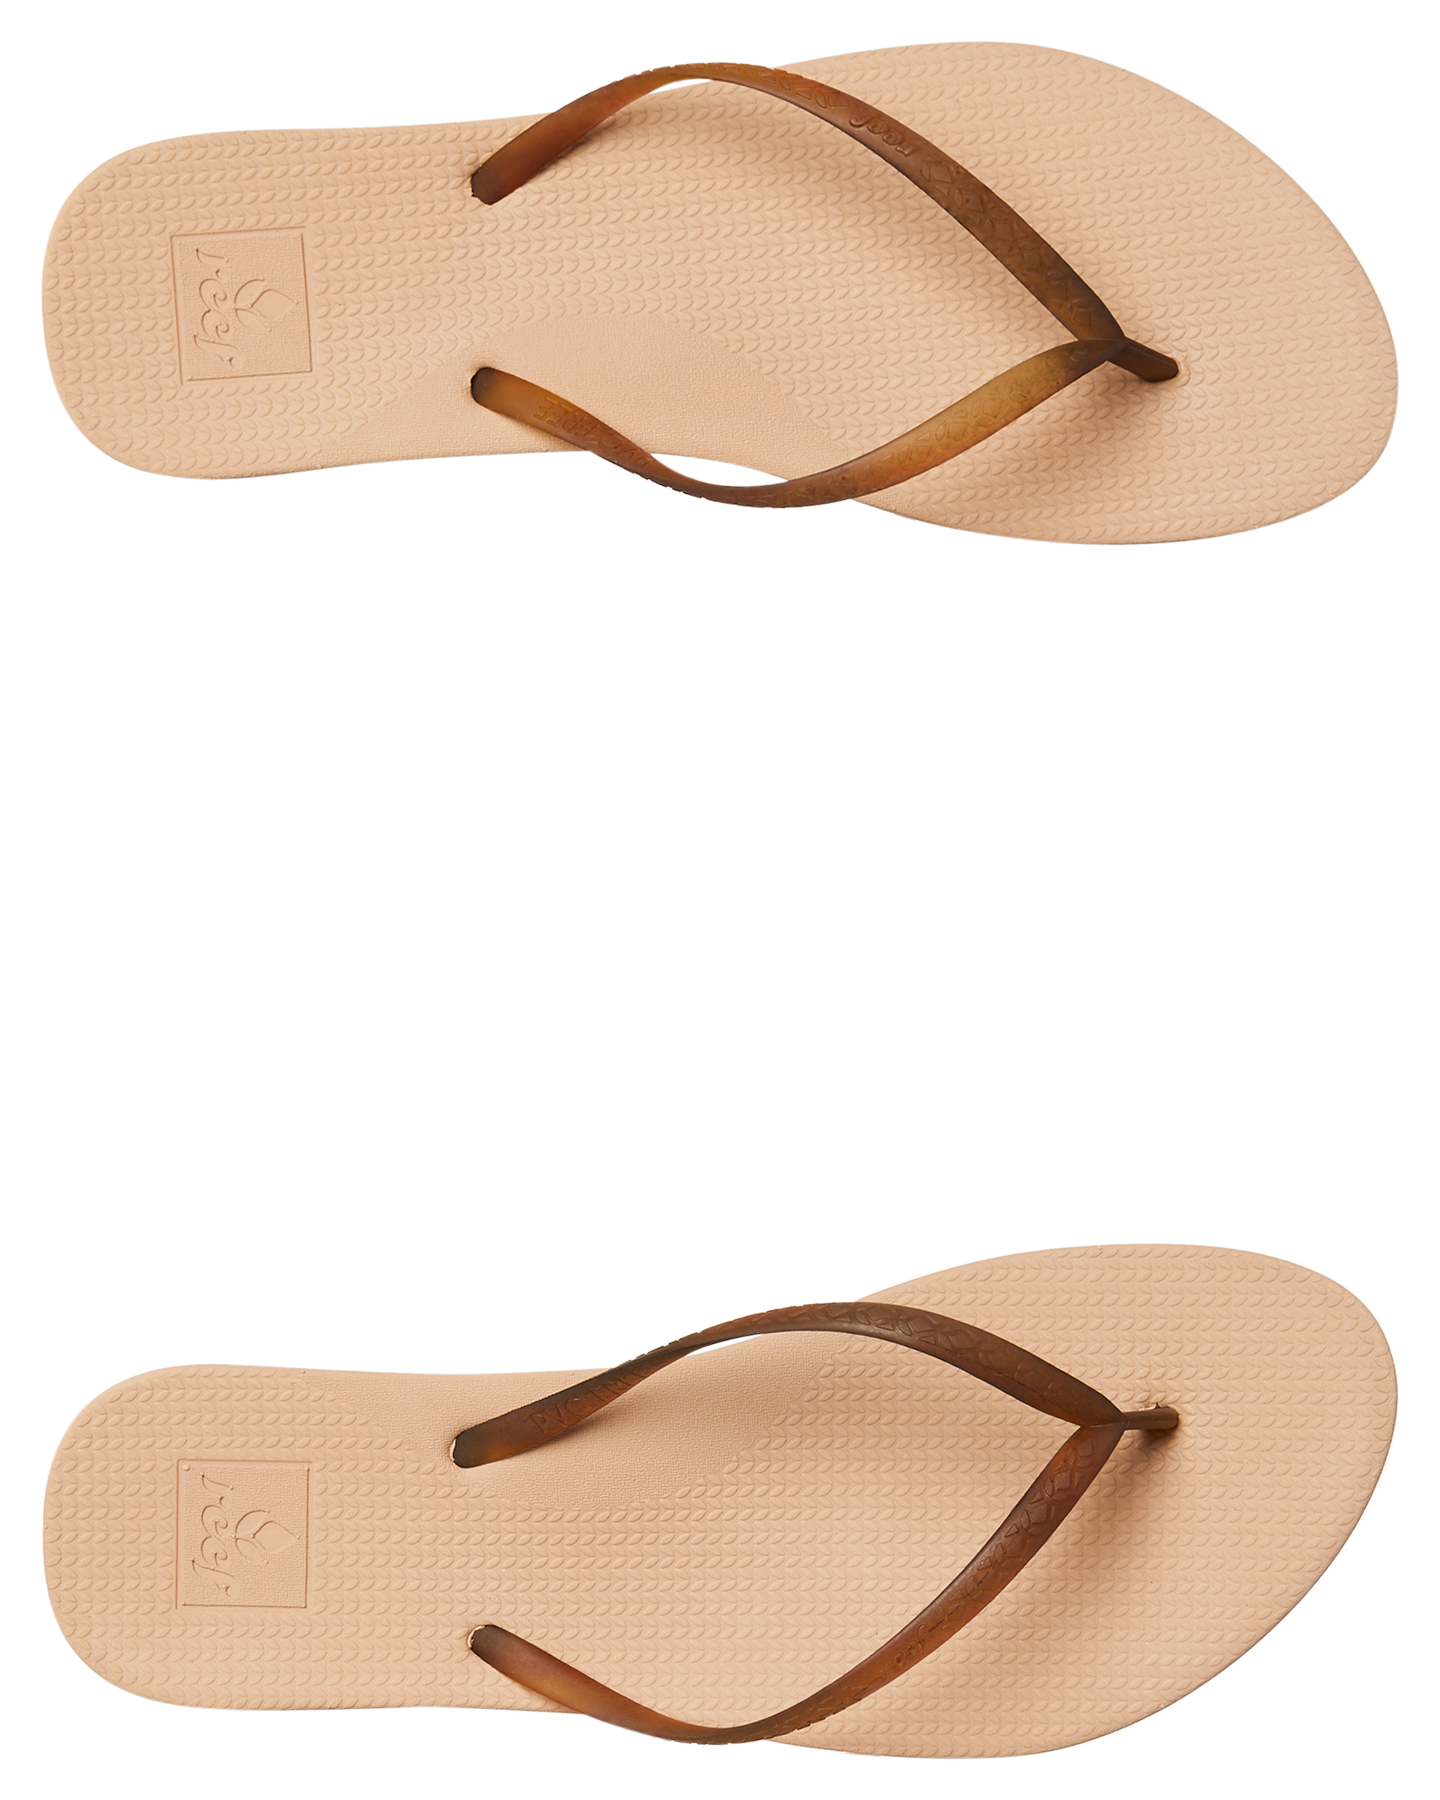 a8dc0a2f77c8 Reef Womens Escape Lux Thong - Nude Tortoise